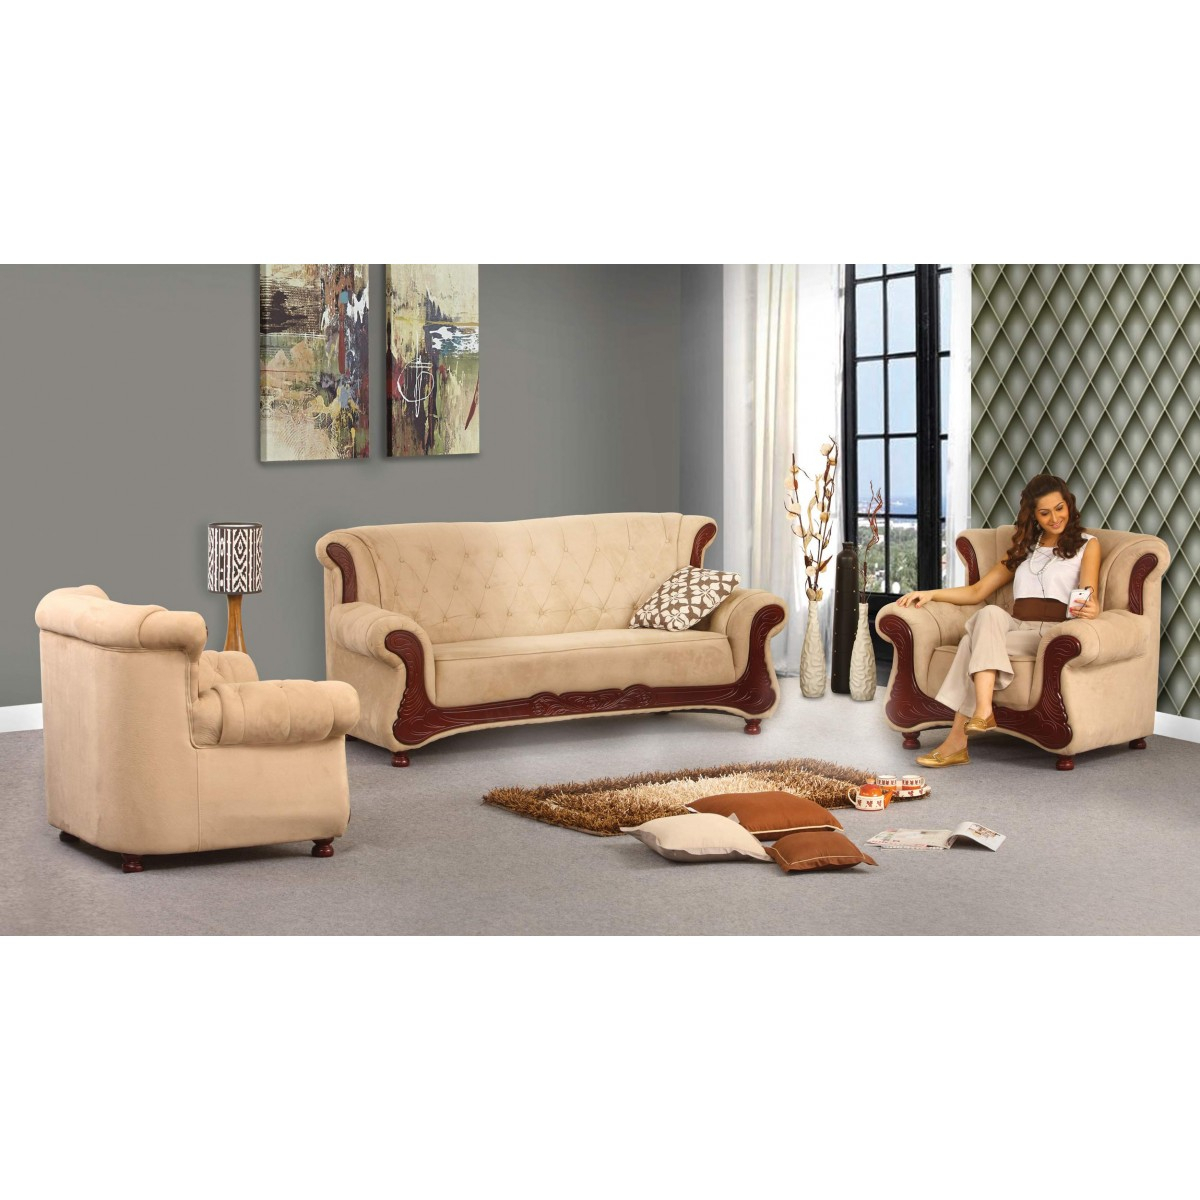 Grace Sofa | Damro Pertaining To Grace Sofa Chairs (Image 13 of 20)